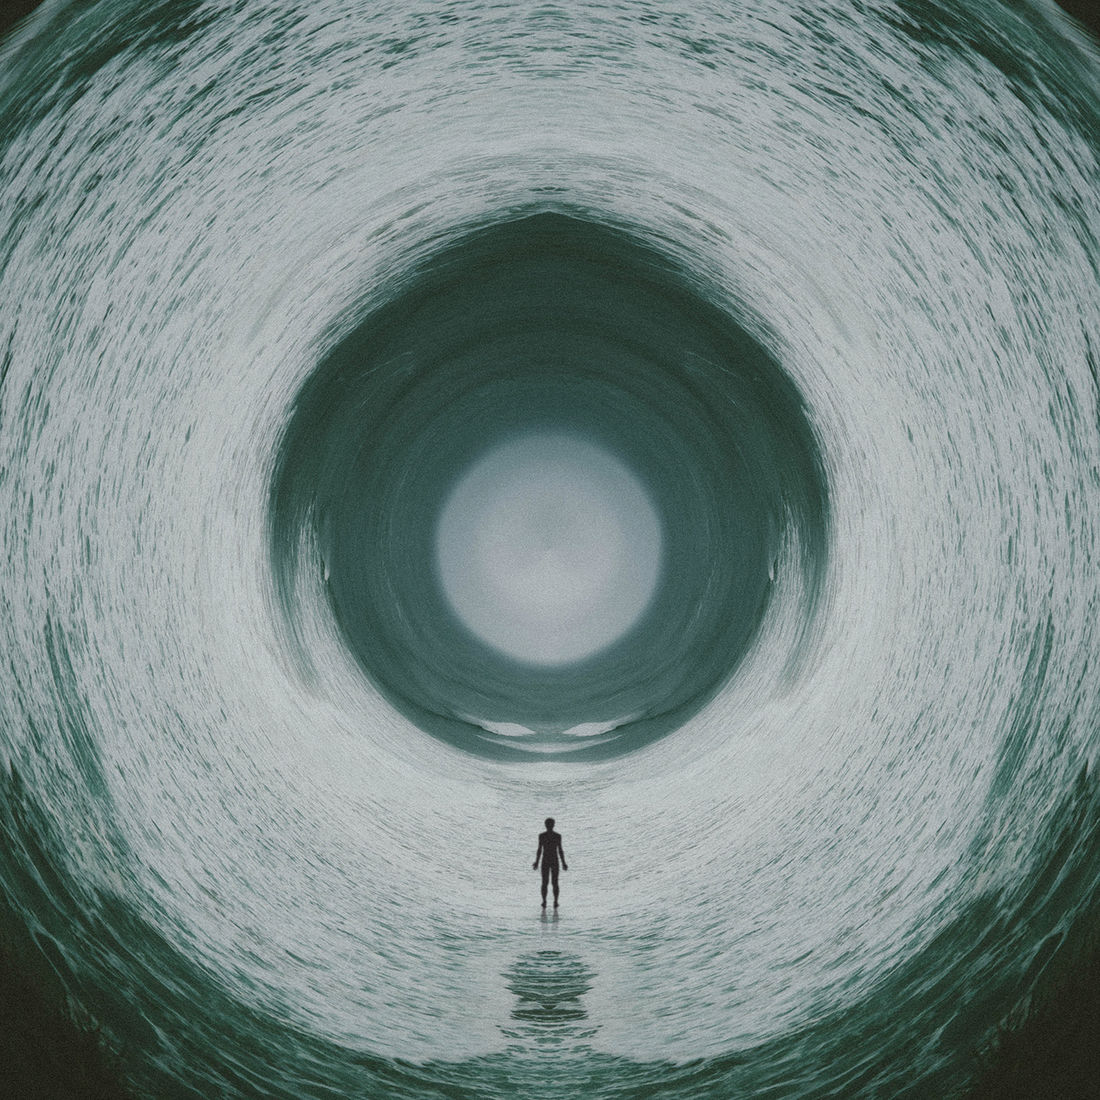 INCEPTION on Behance